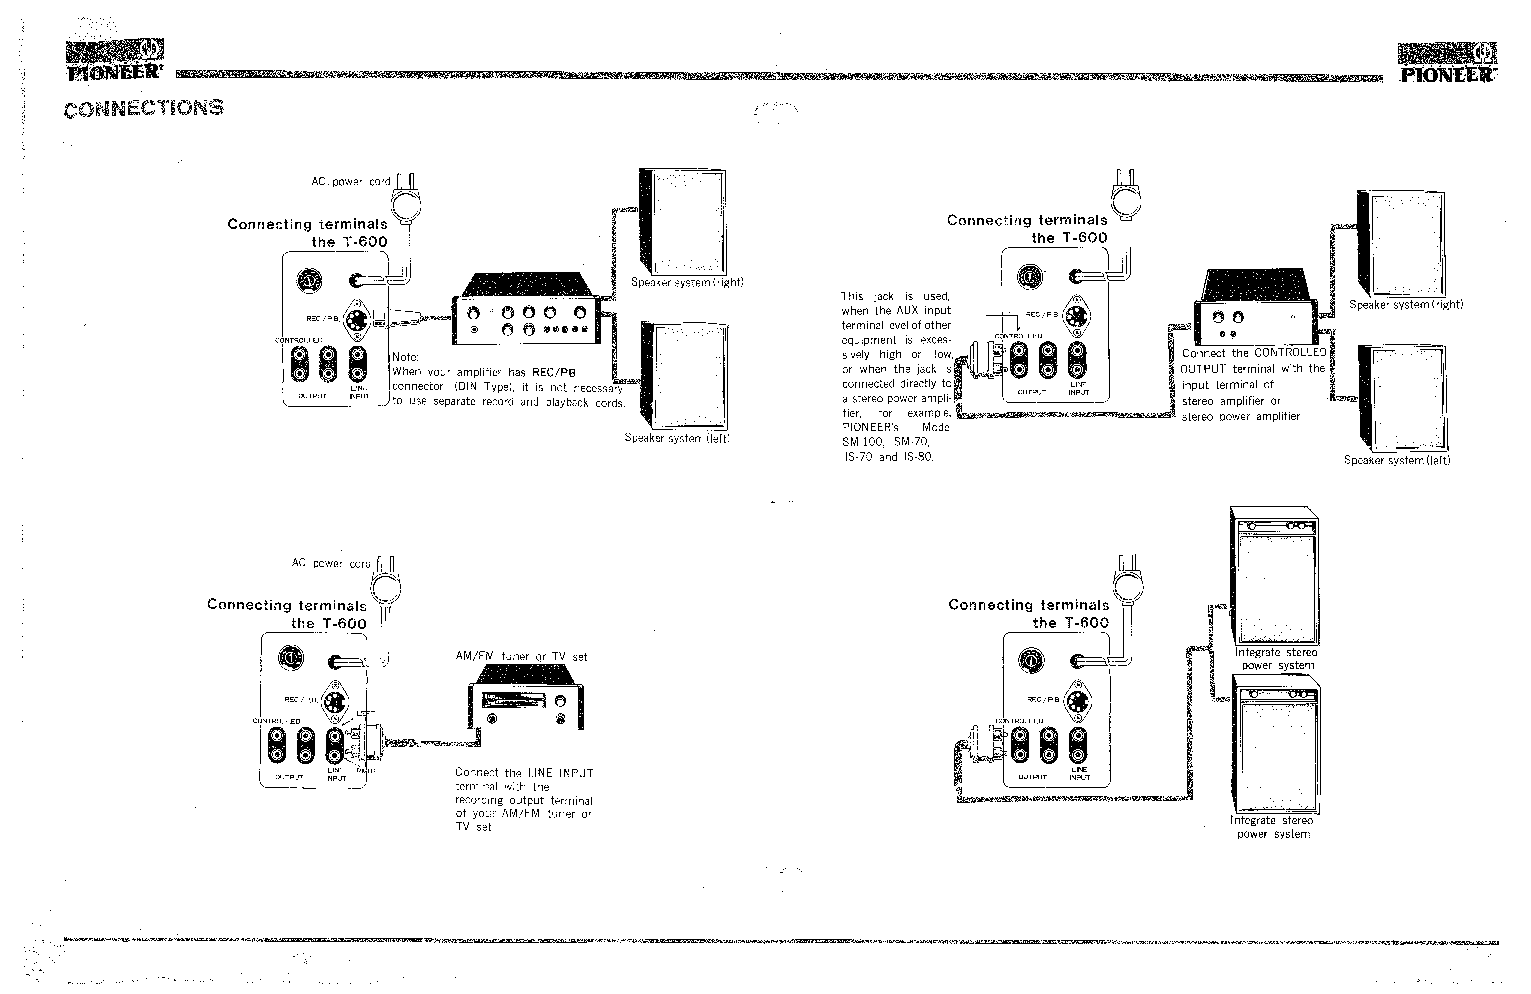 PIONEER T-600 STEREO TAPE DECK SCH Service Manual download